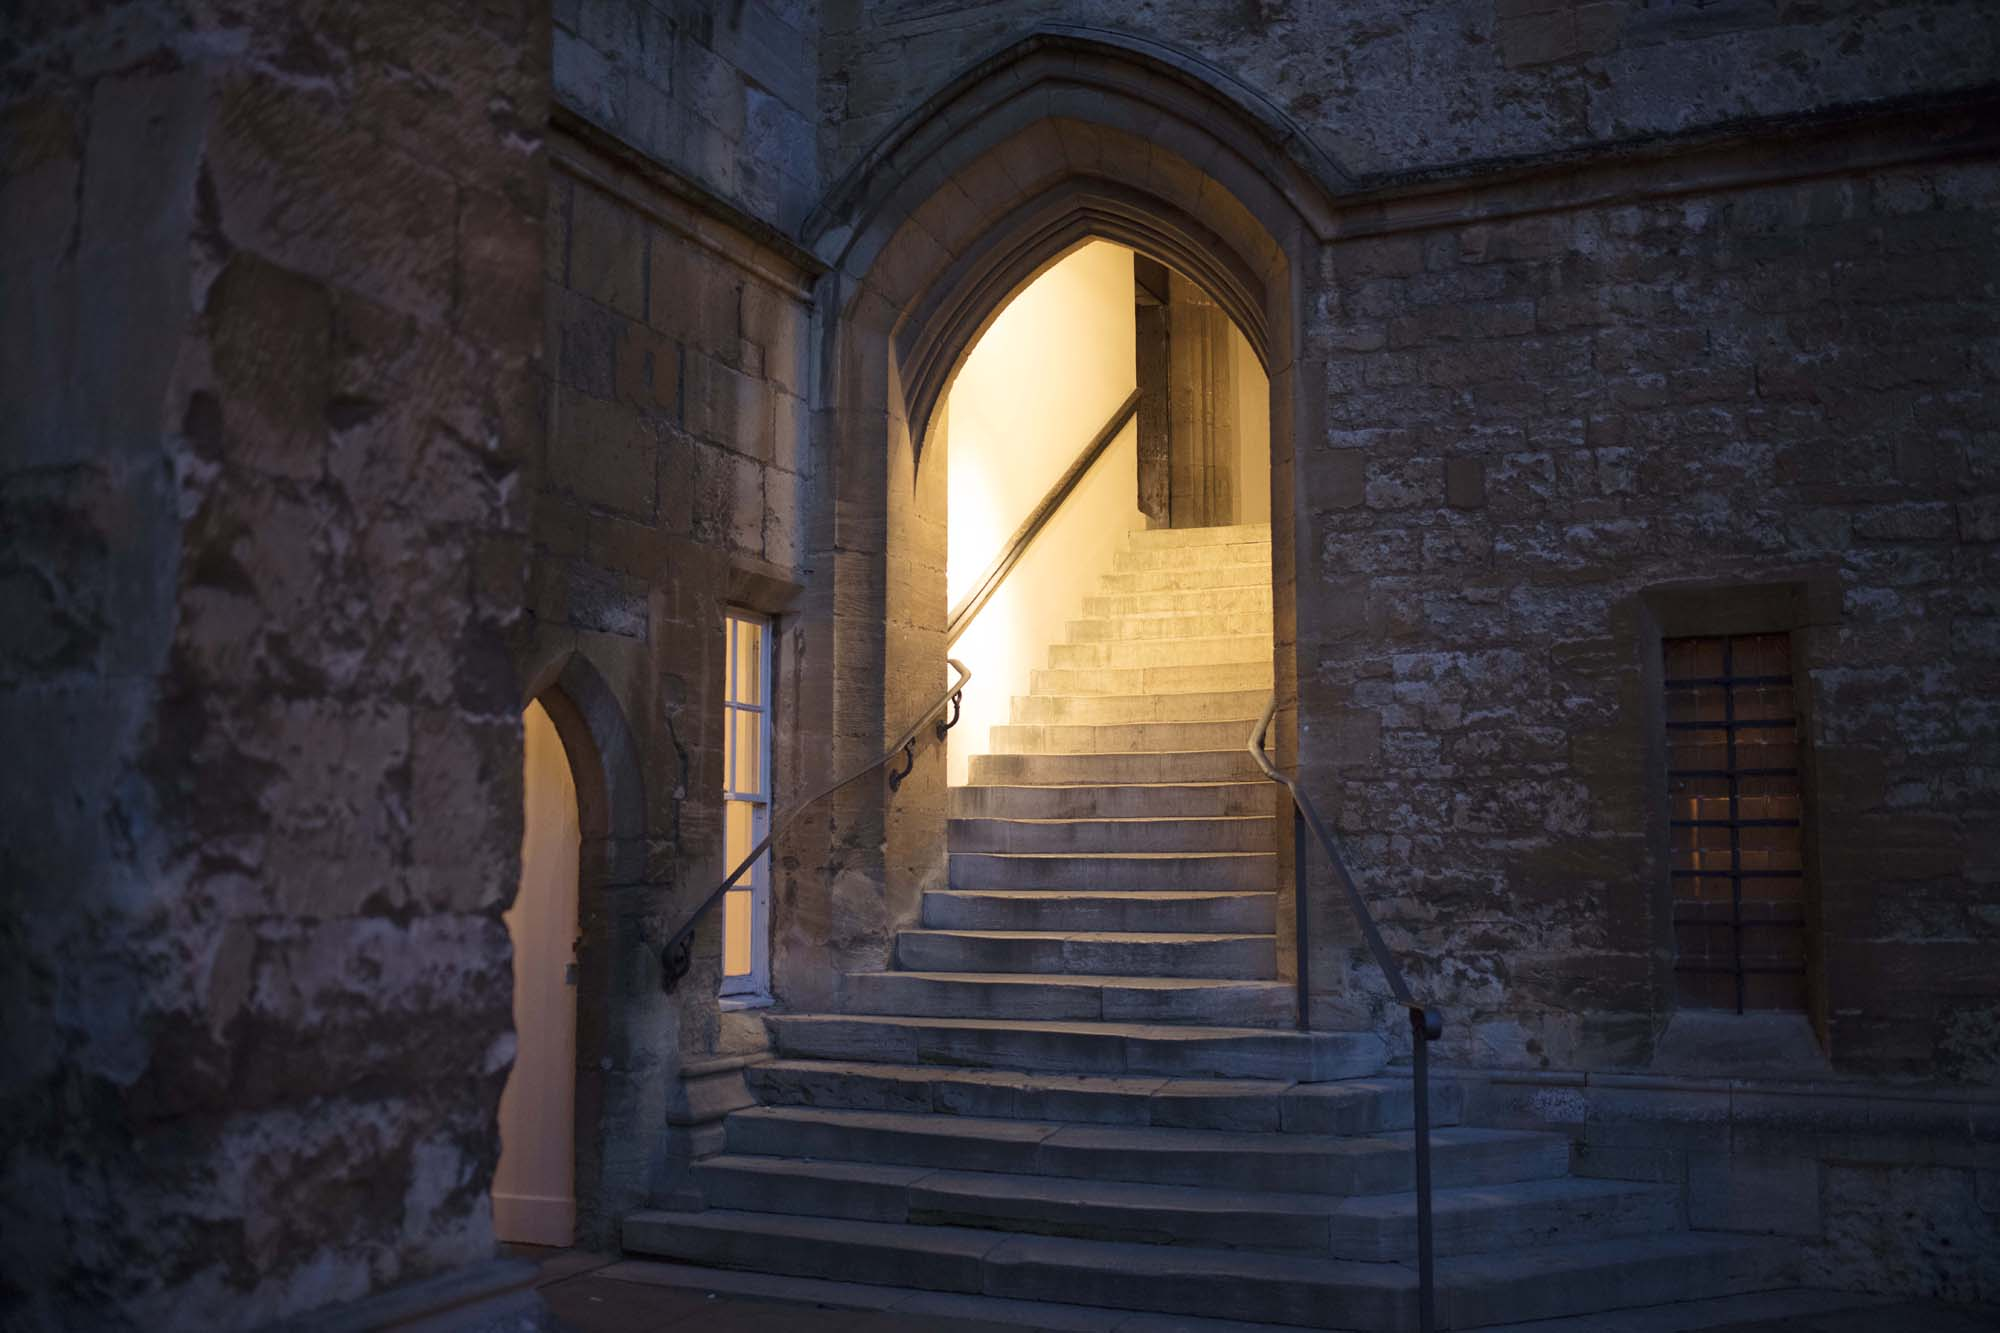 Dining Hall Staircase at Dusk